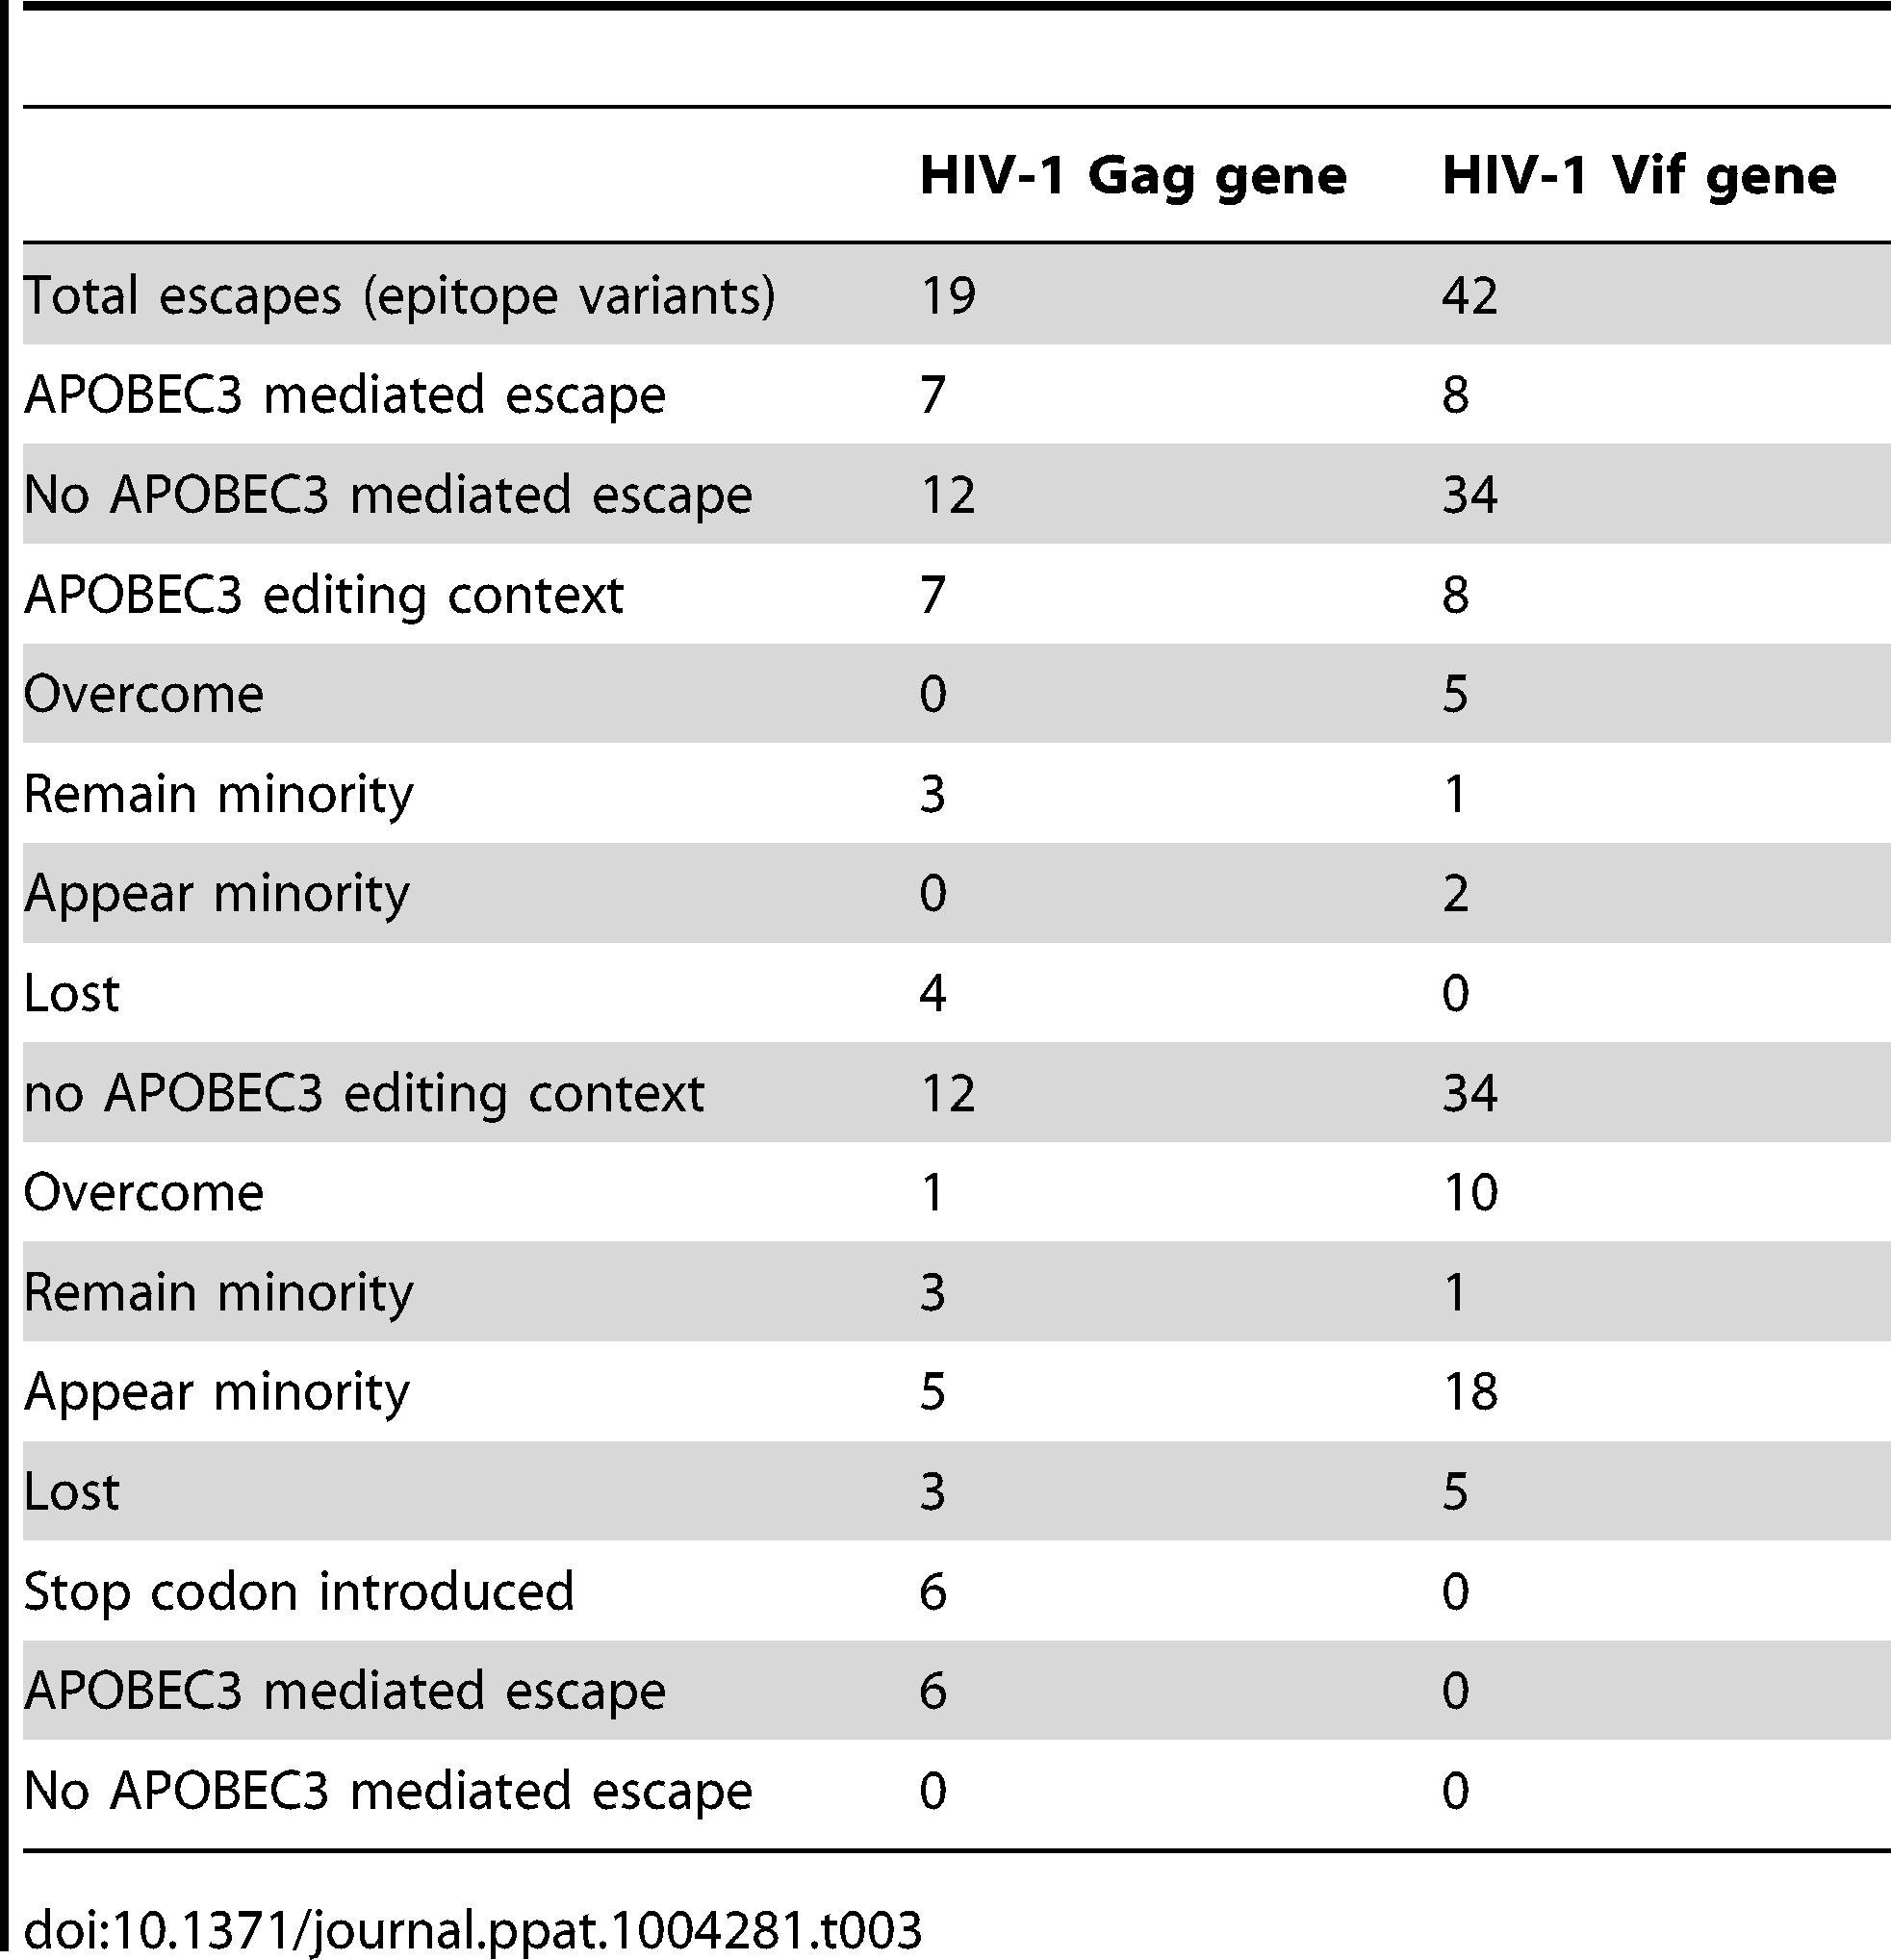 CTL epitope variants found in the Gag and Vif genes of HIV-1 from the ten patients.